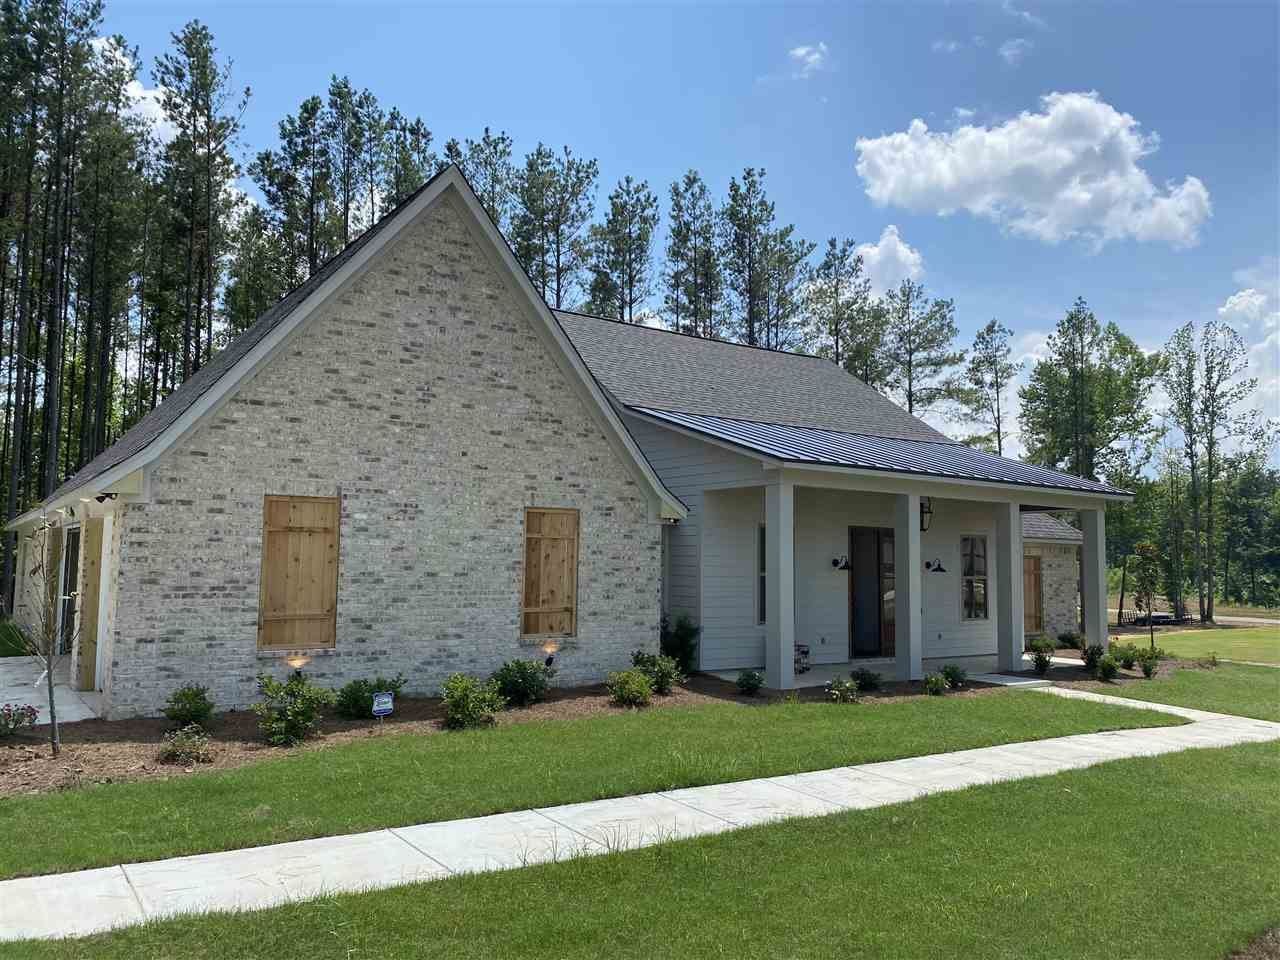 202 LOST OAK LN, Brandon, MS 39047 - MLS#: 333684